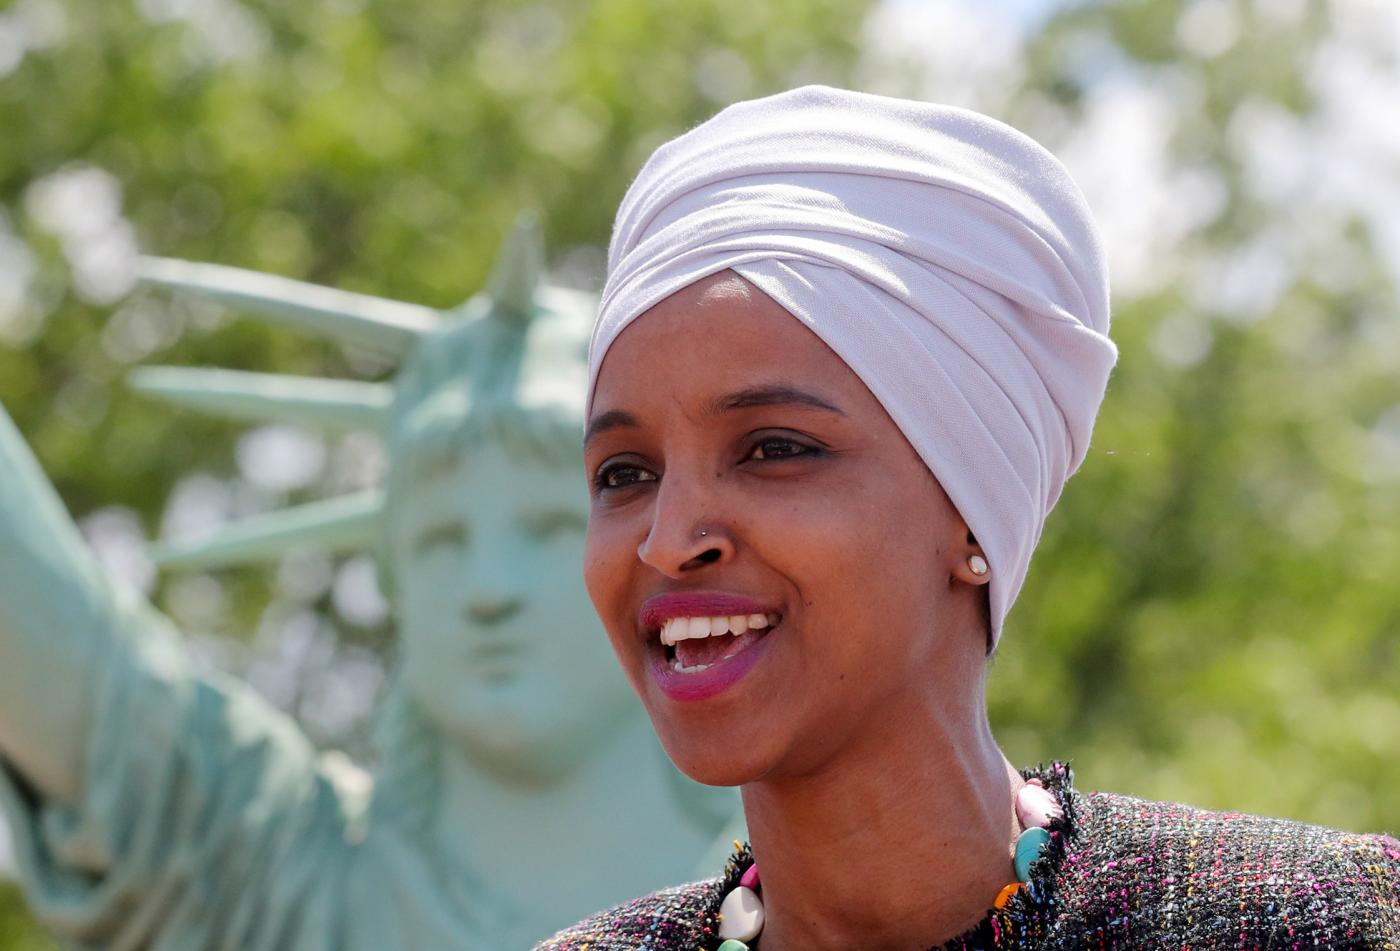 Somali. Black. Muslim. Woman. Refugee. American: The making of Ilhan Omar